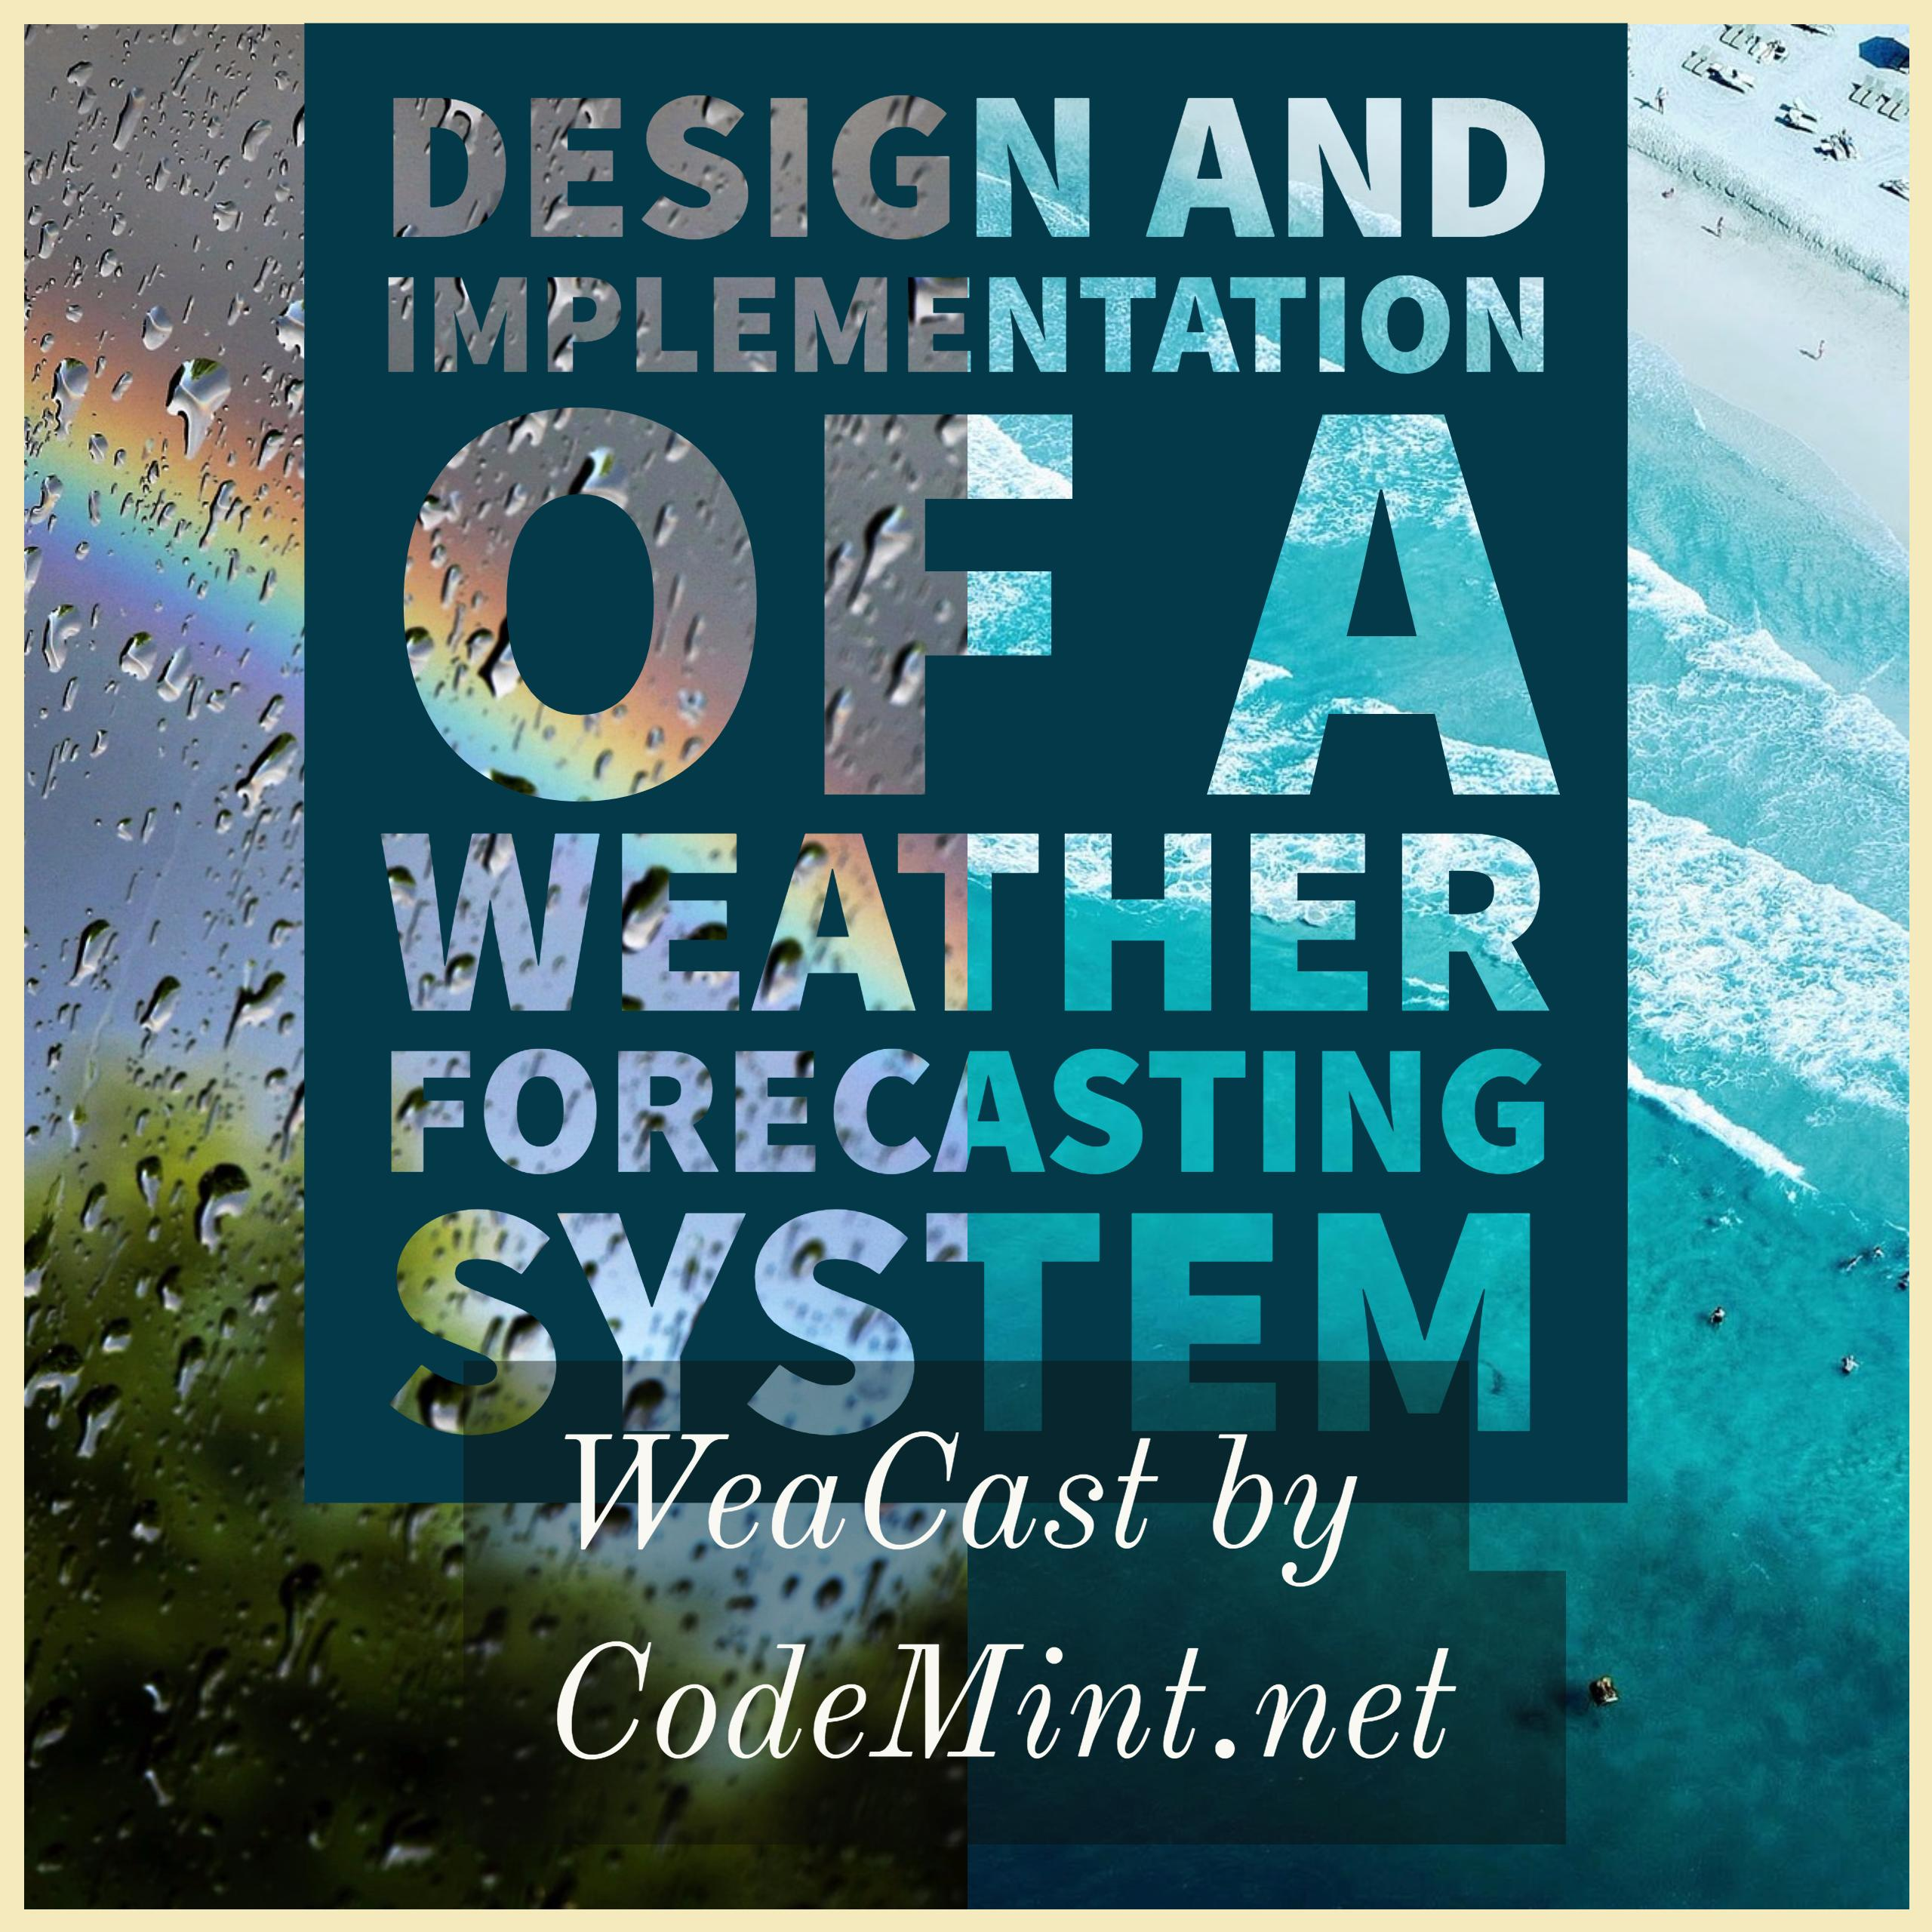 WeaCast - Design and Implementation of A Weather Forecasting System image